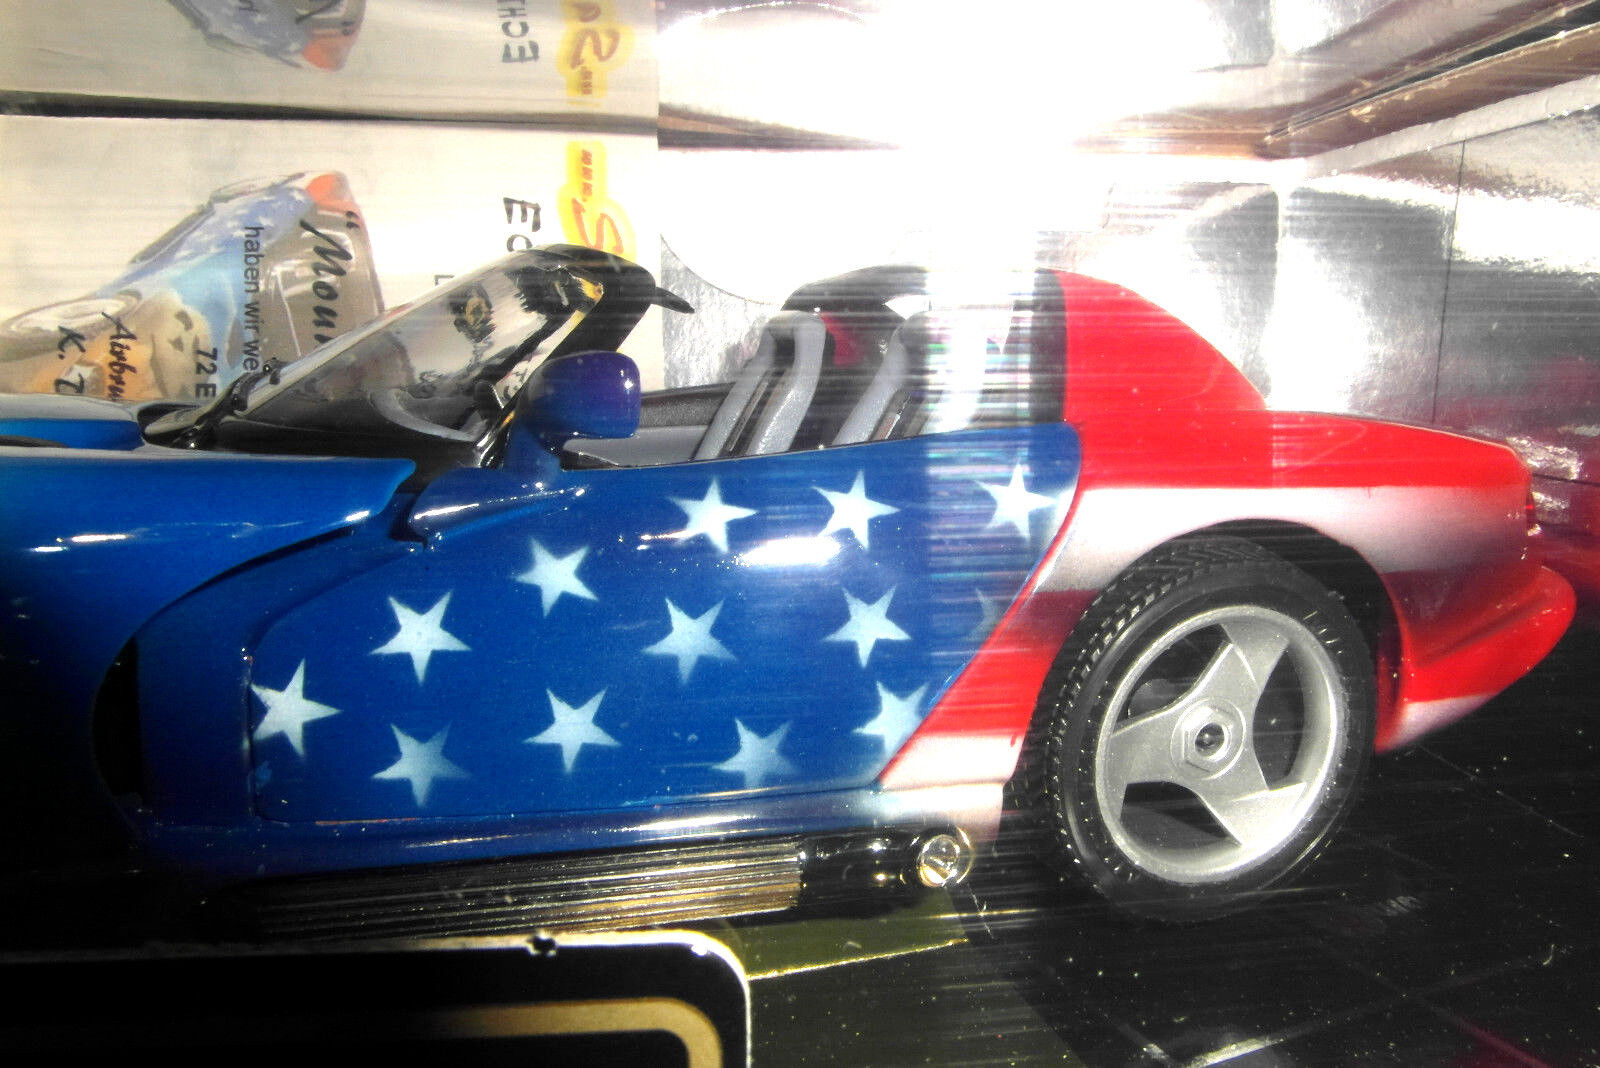 Mount Rushmore  Dodge Dodge Dodge Viper RT 10 1992  QVC Airbrushmodell Limited 72 Stk. Nr.54 436ff2